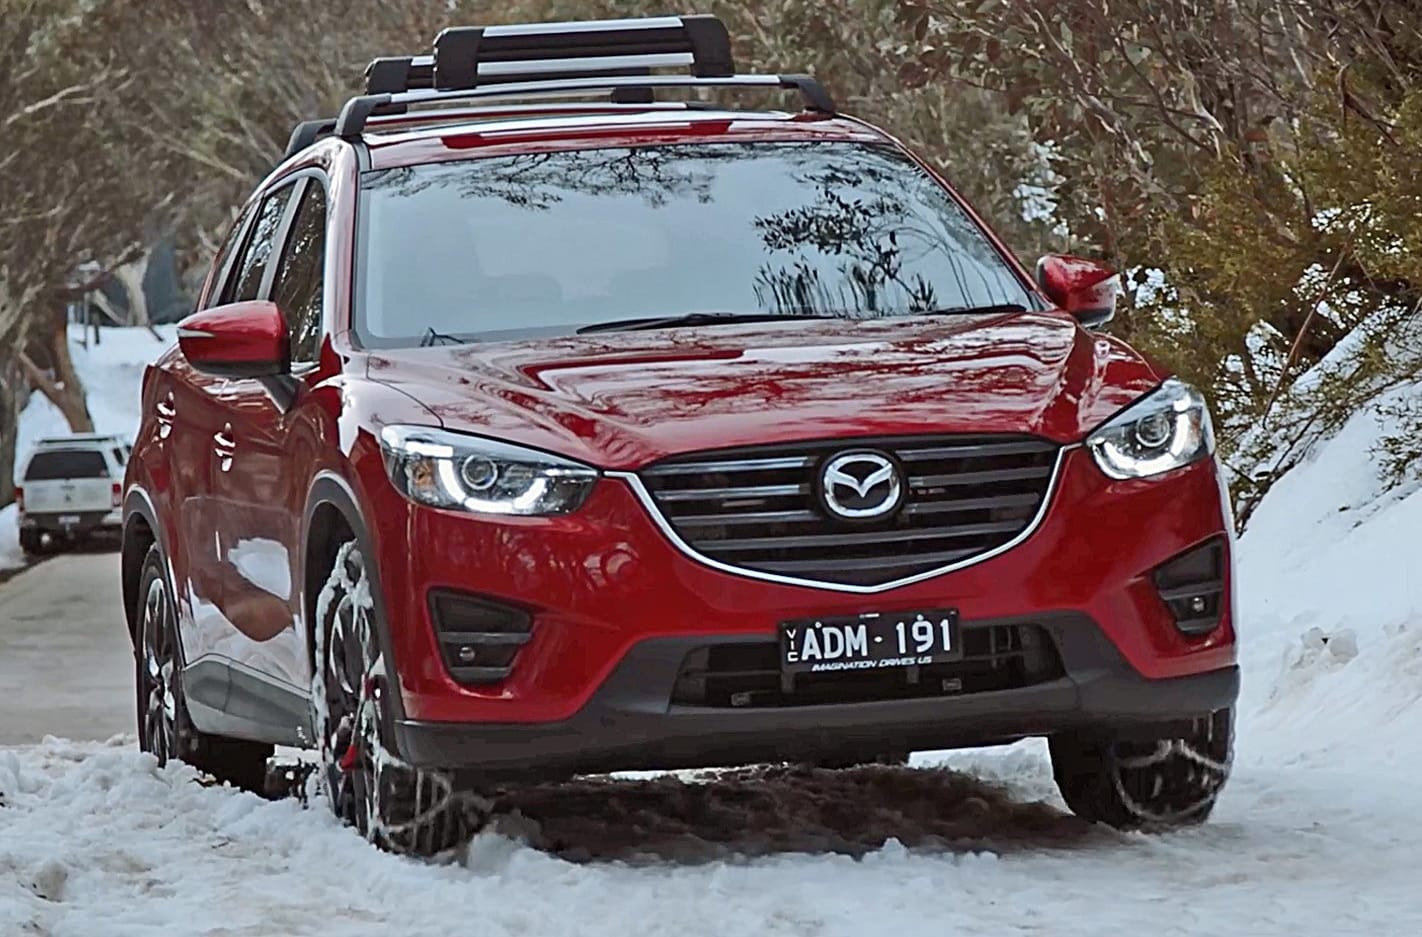 Mazda CX 5 Driving With Snow Tyres Jpg